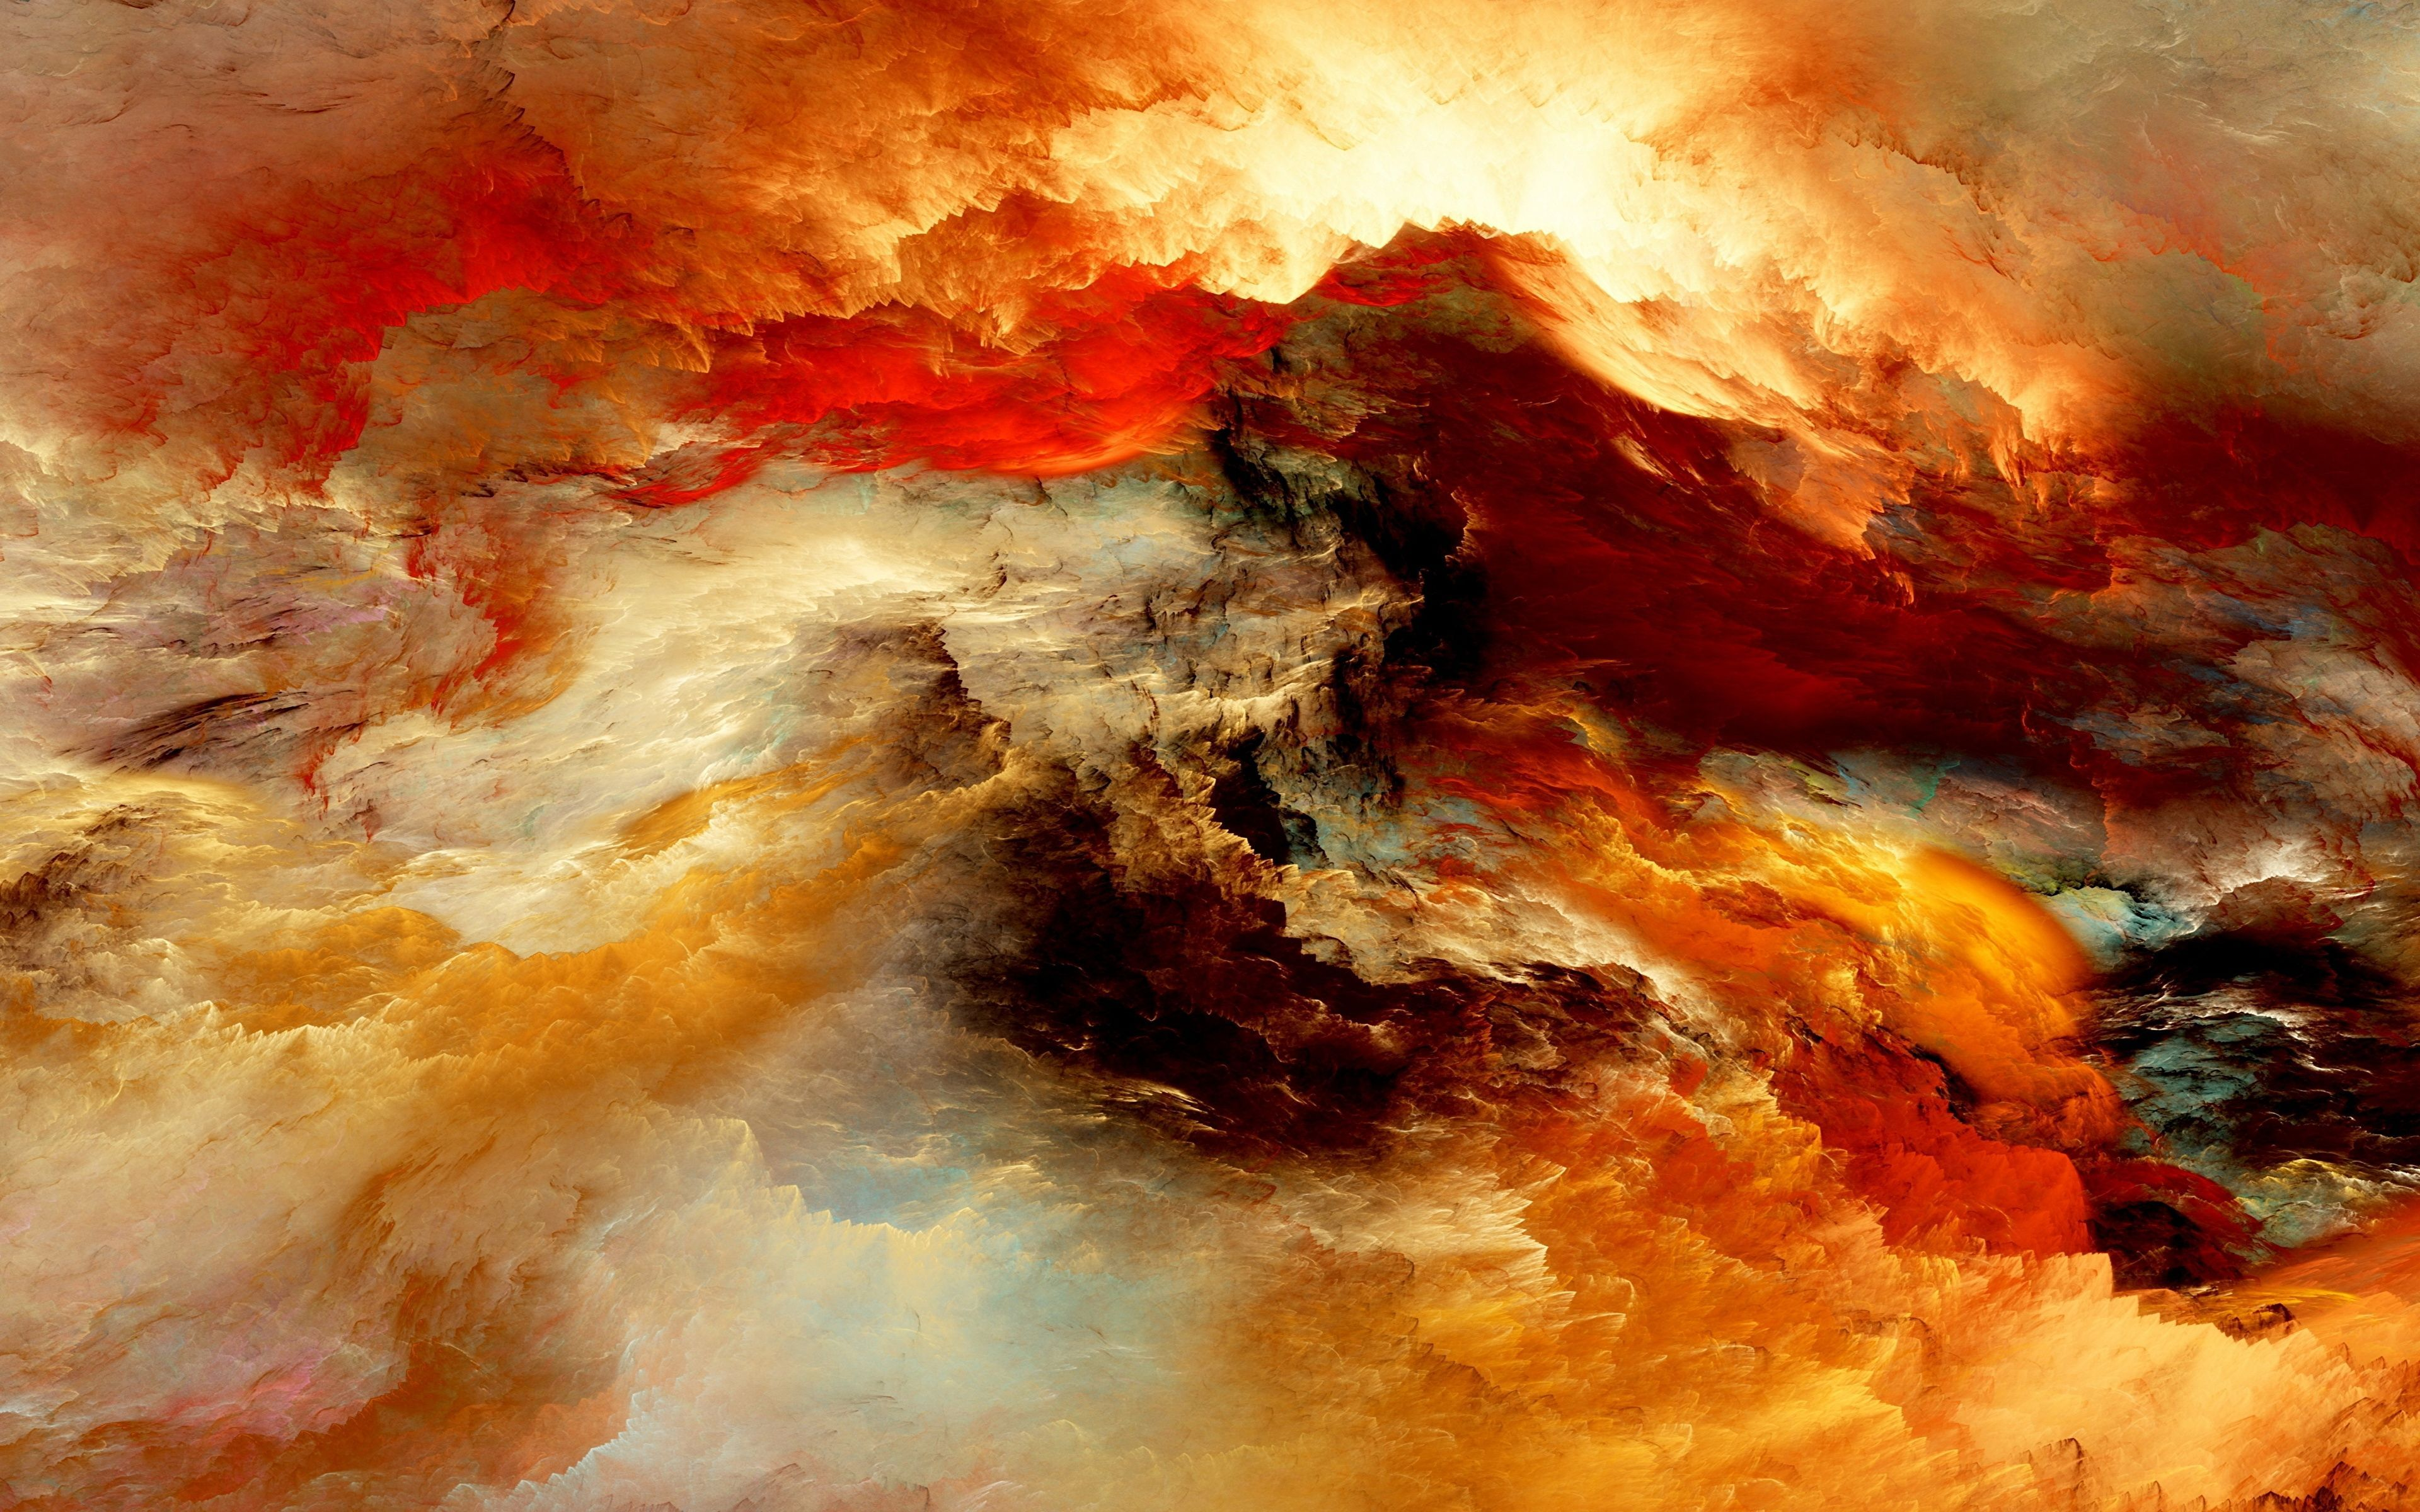 3840x2400 Wallpapers 3D Graphics Abstract art 3840x2400